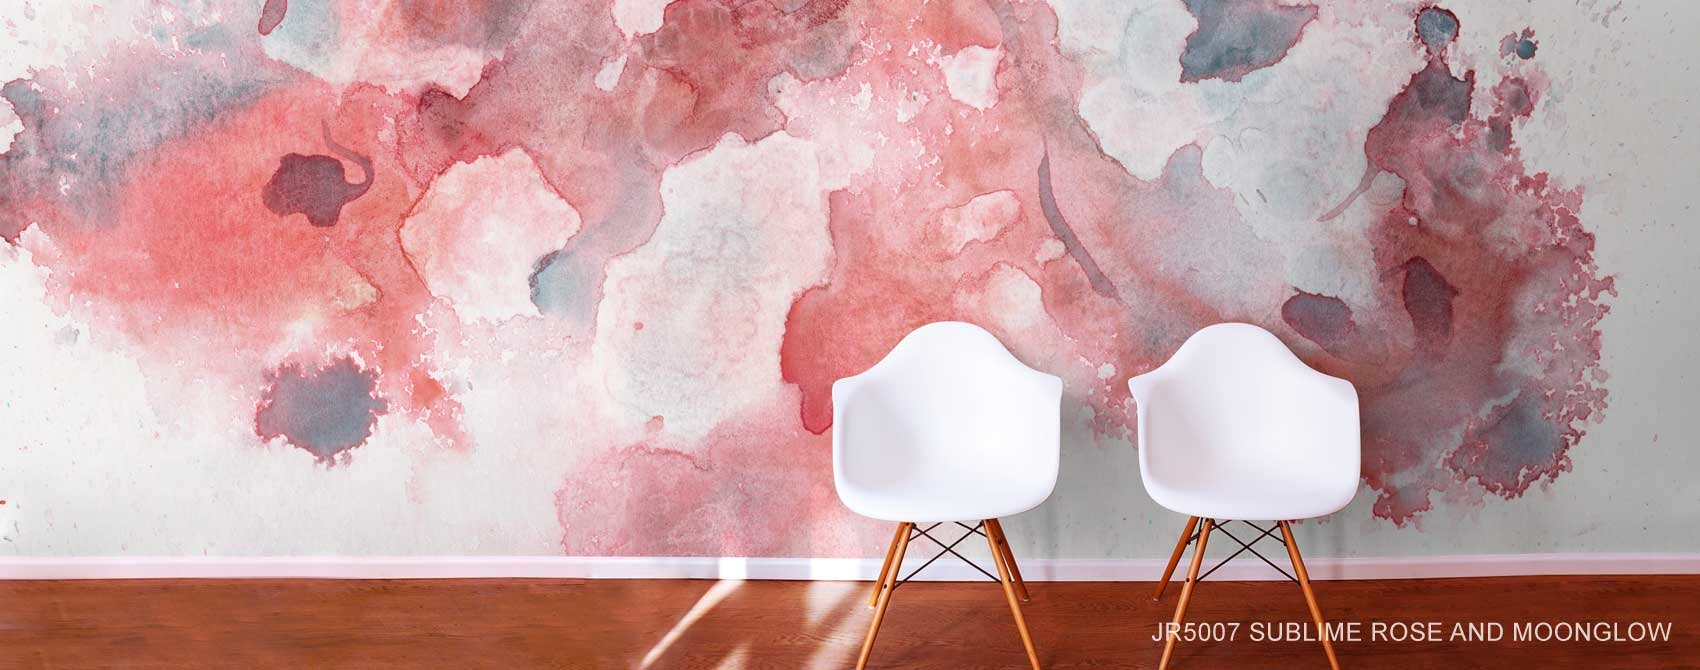 Sublime Rose and Moonglow Wall Mural